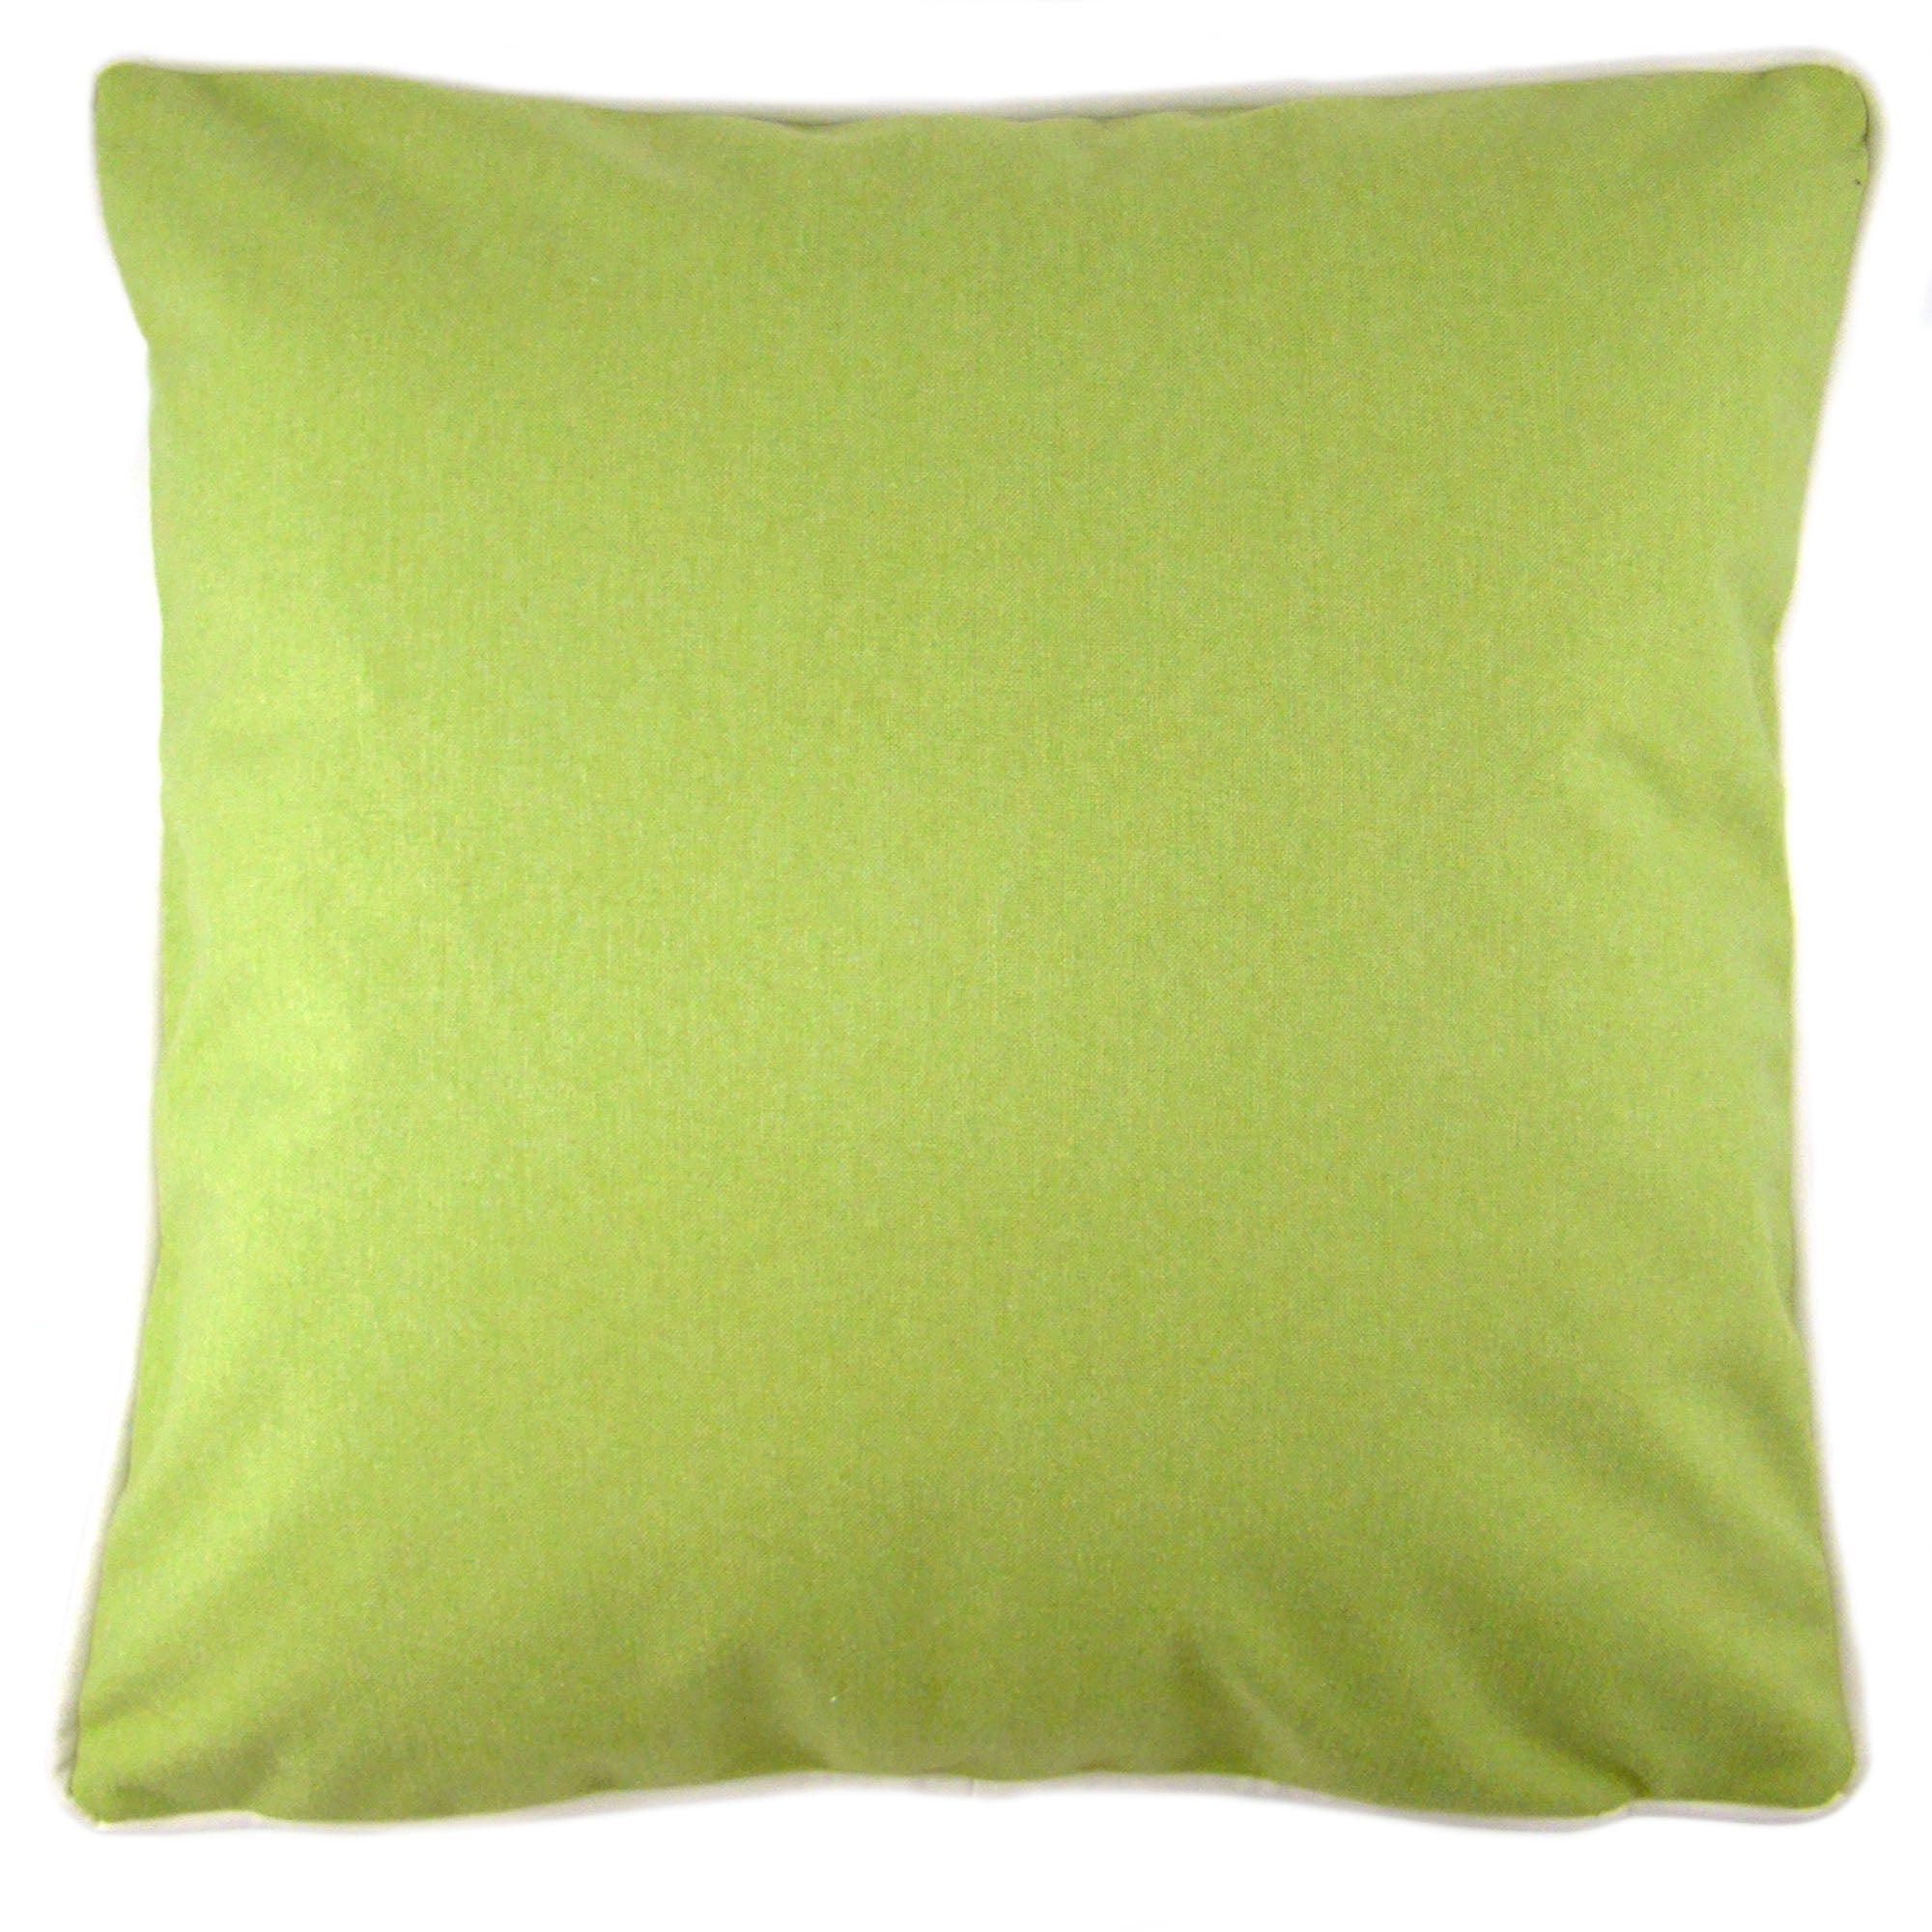 Photo of Avalon green cushion cover green